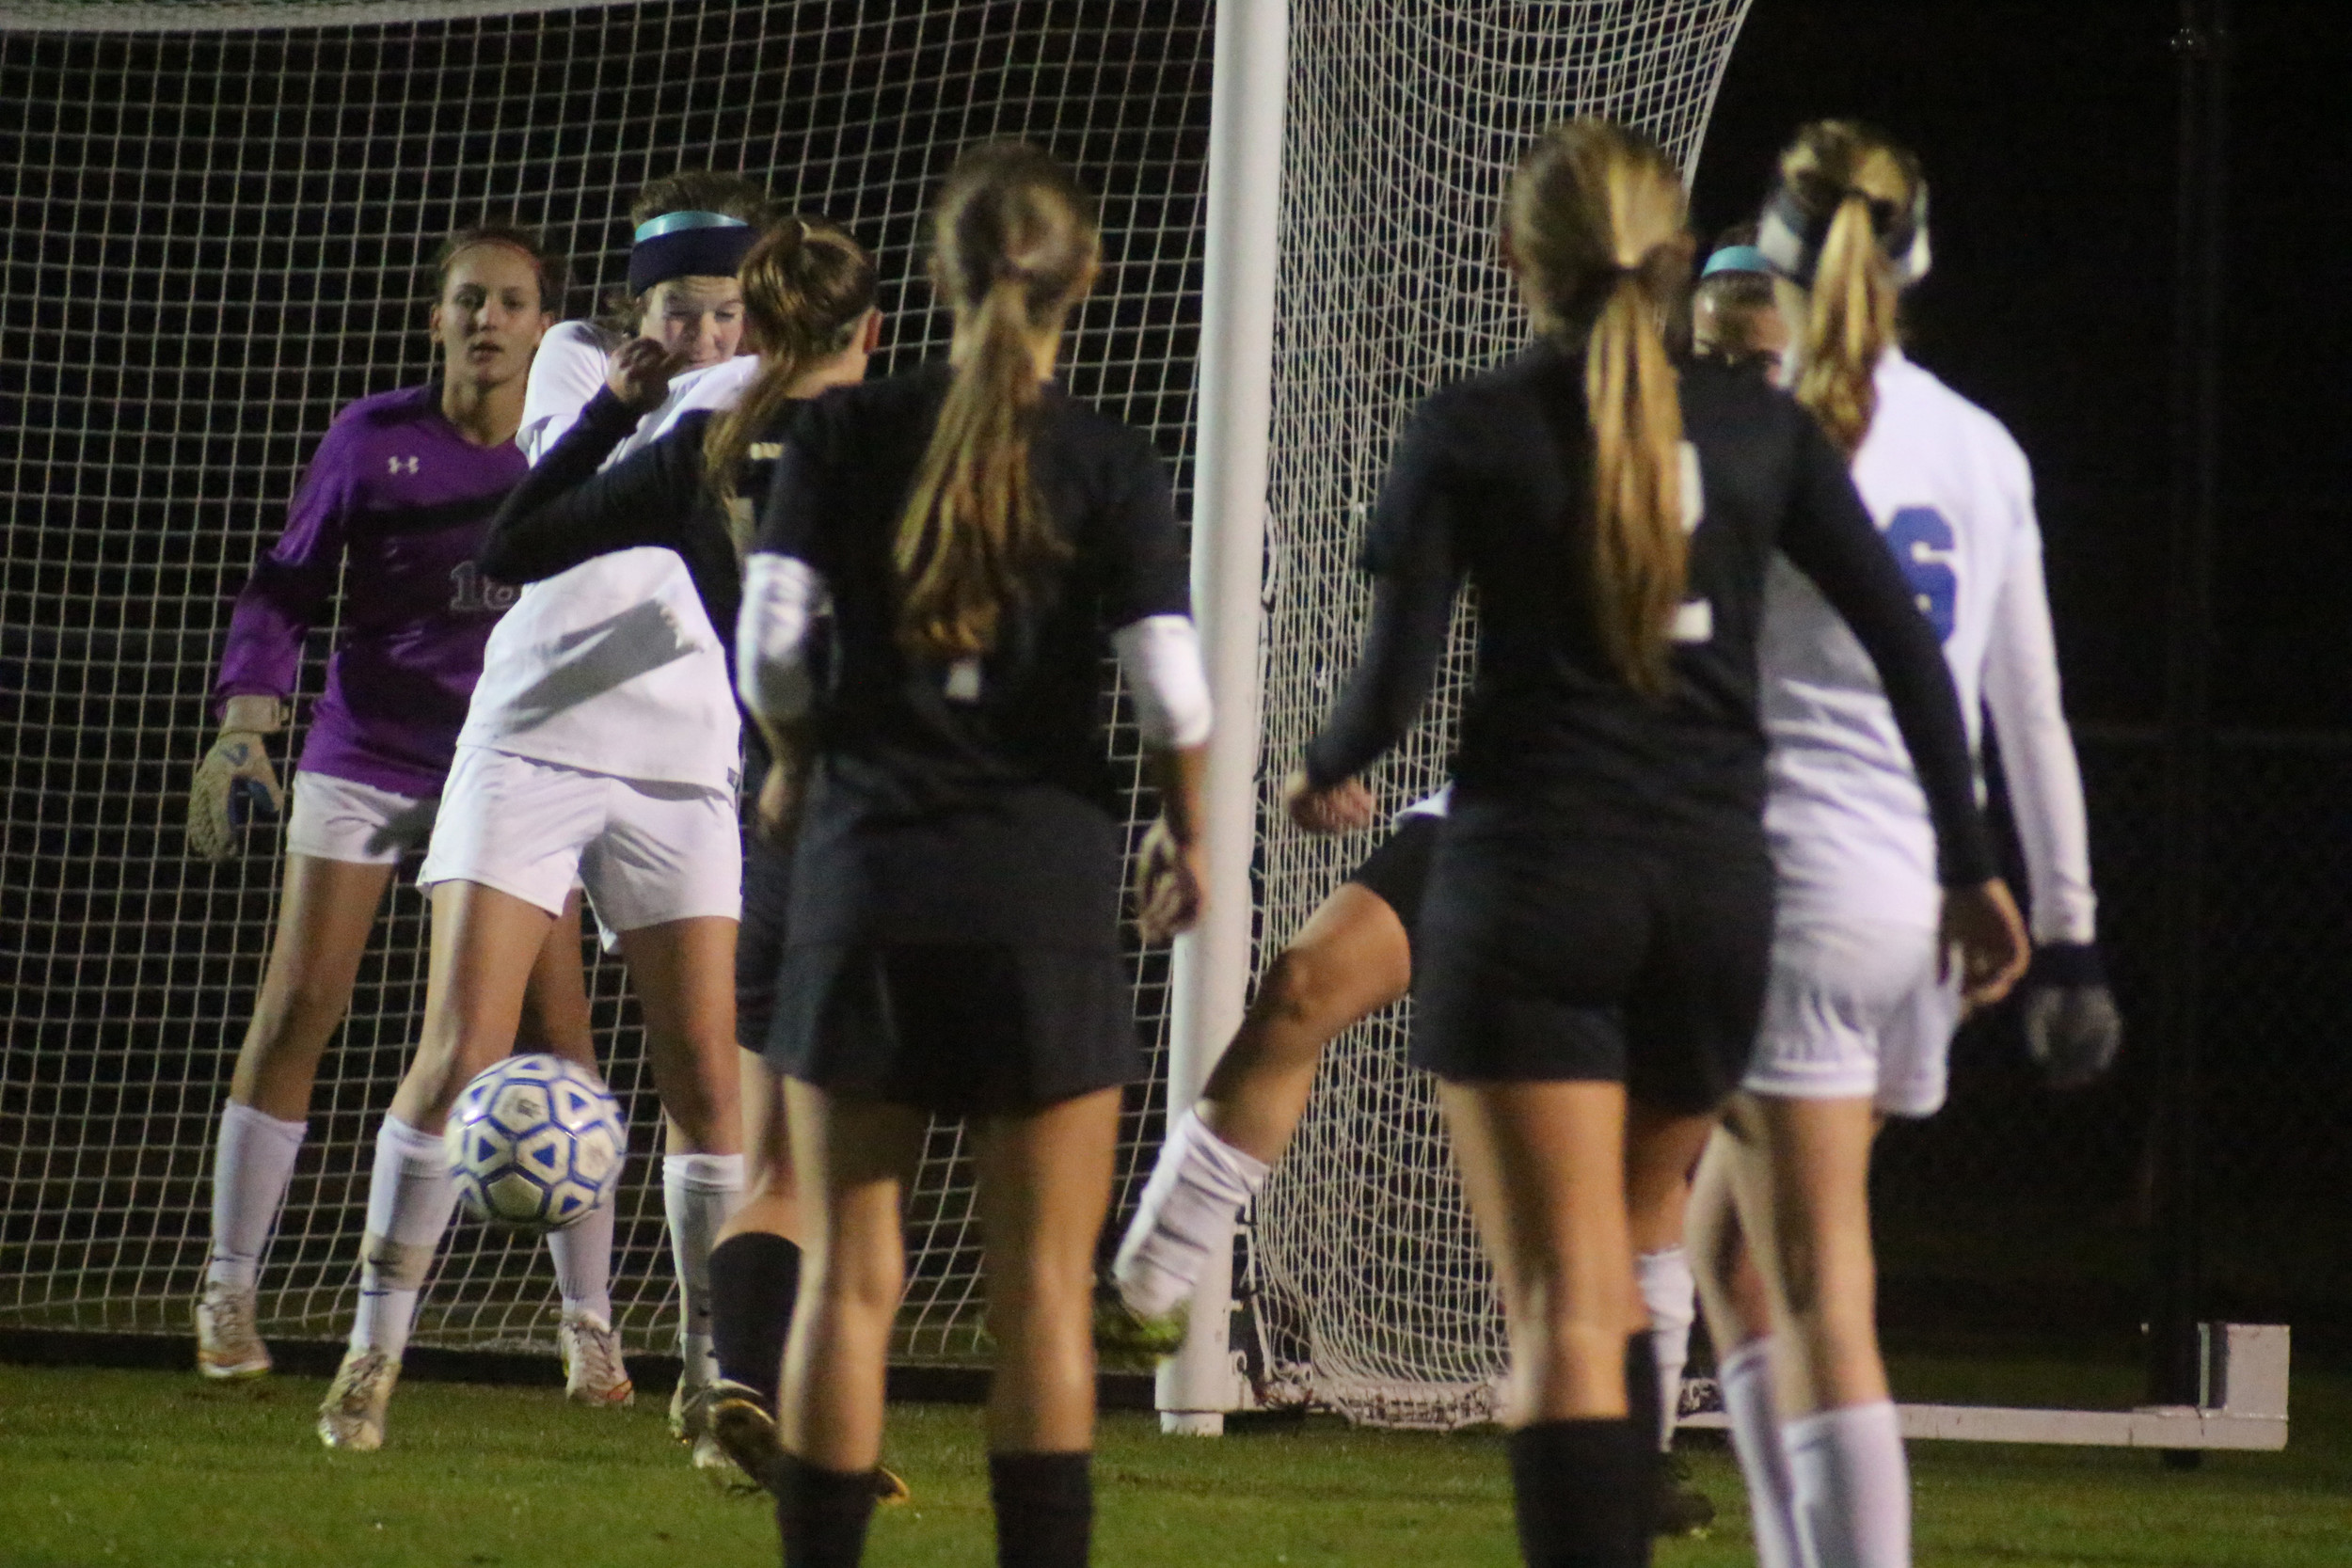 Oakleaf had plenty of opportunities for scores with six corner kicks against Bartram Trail.